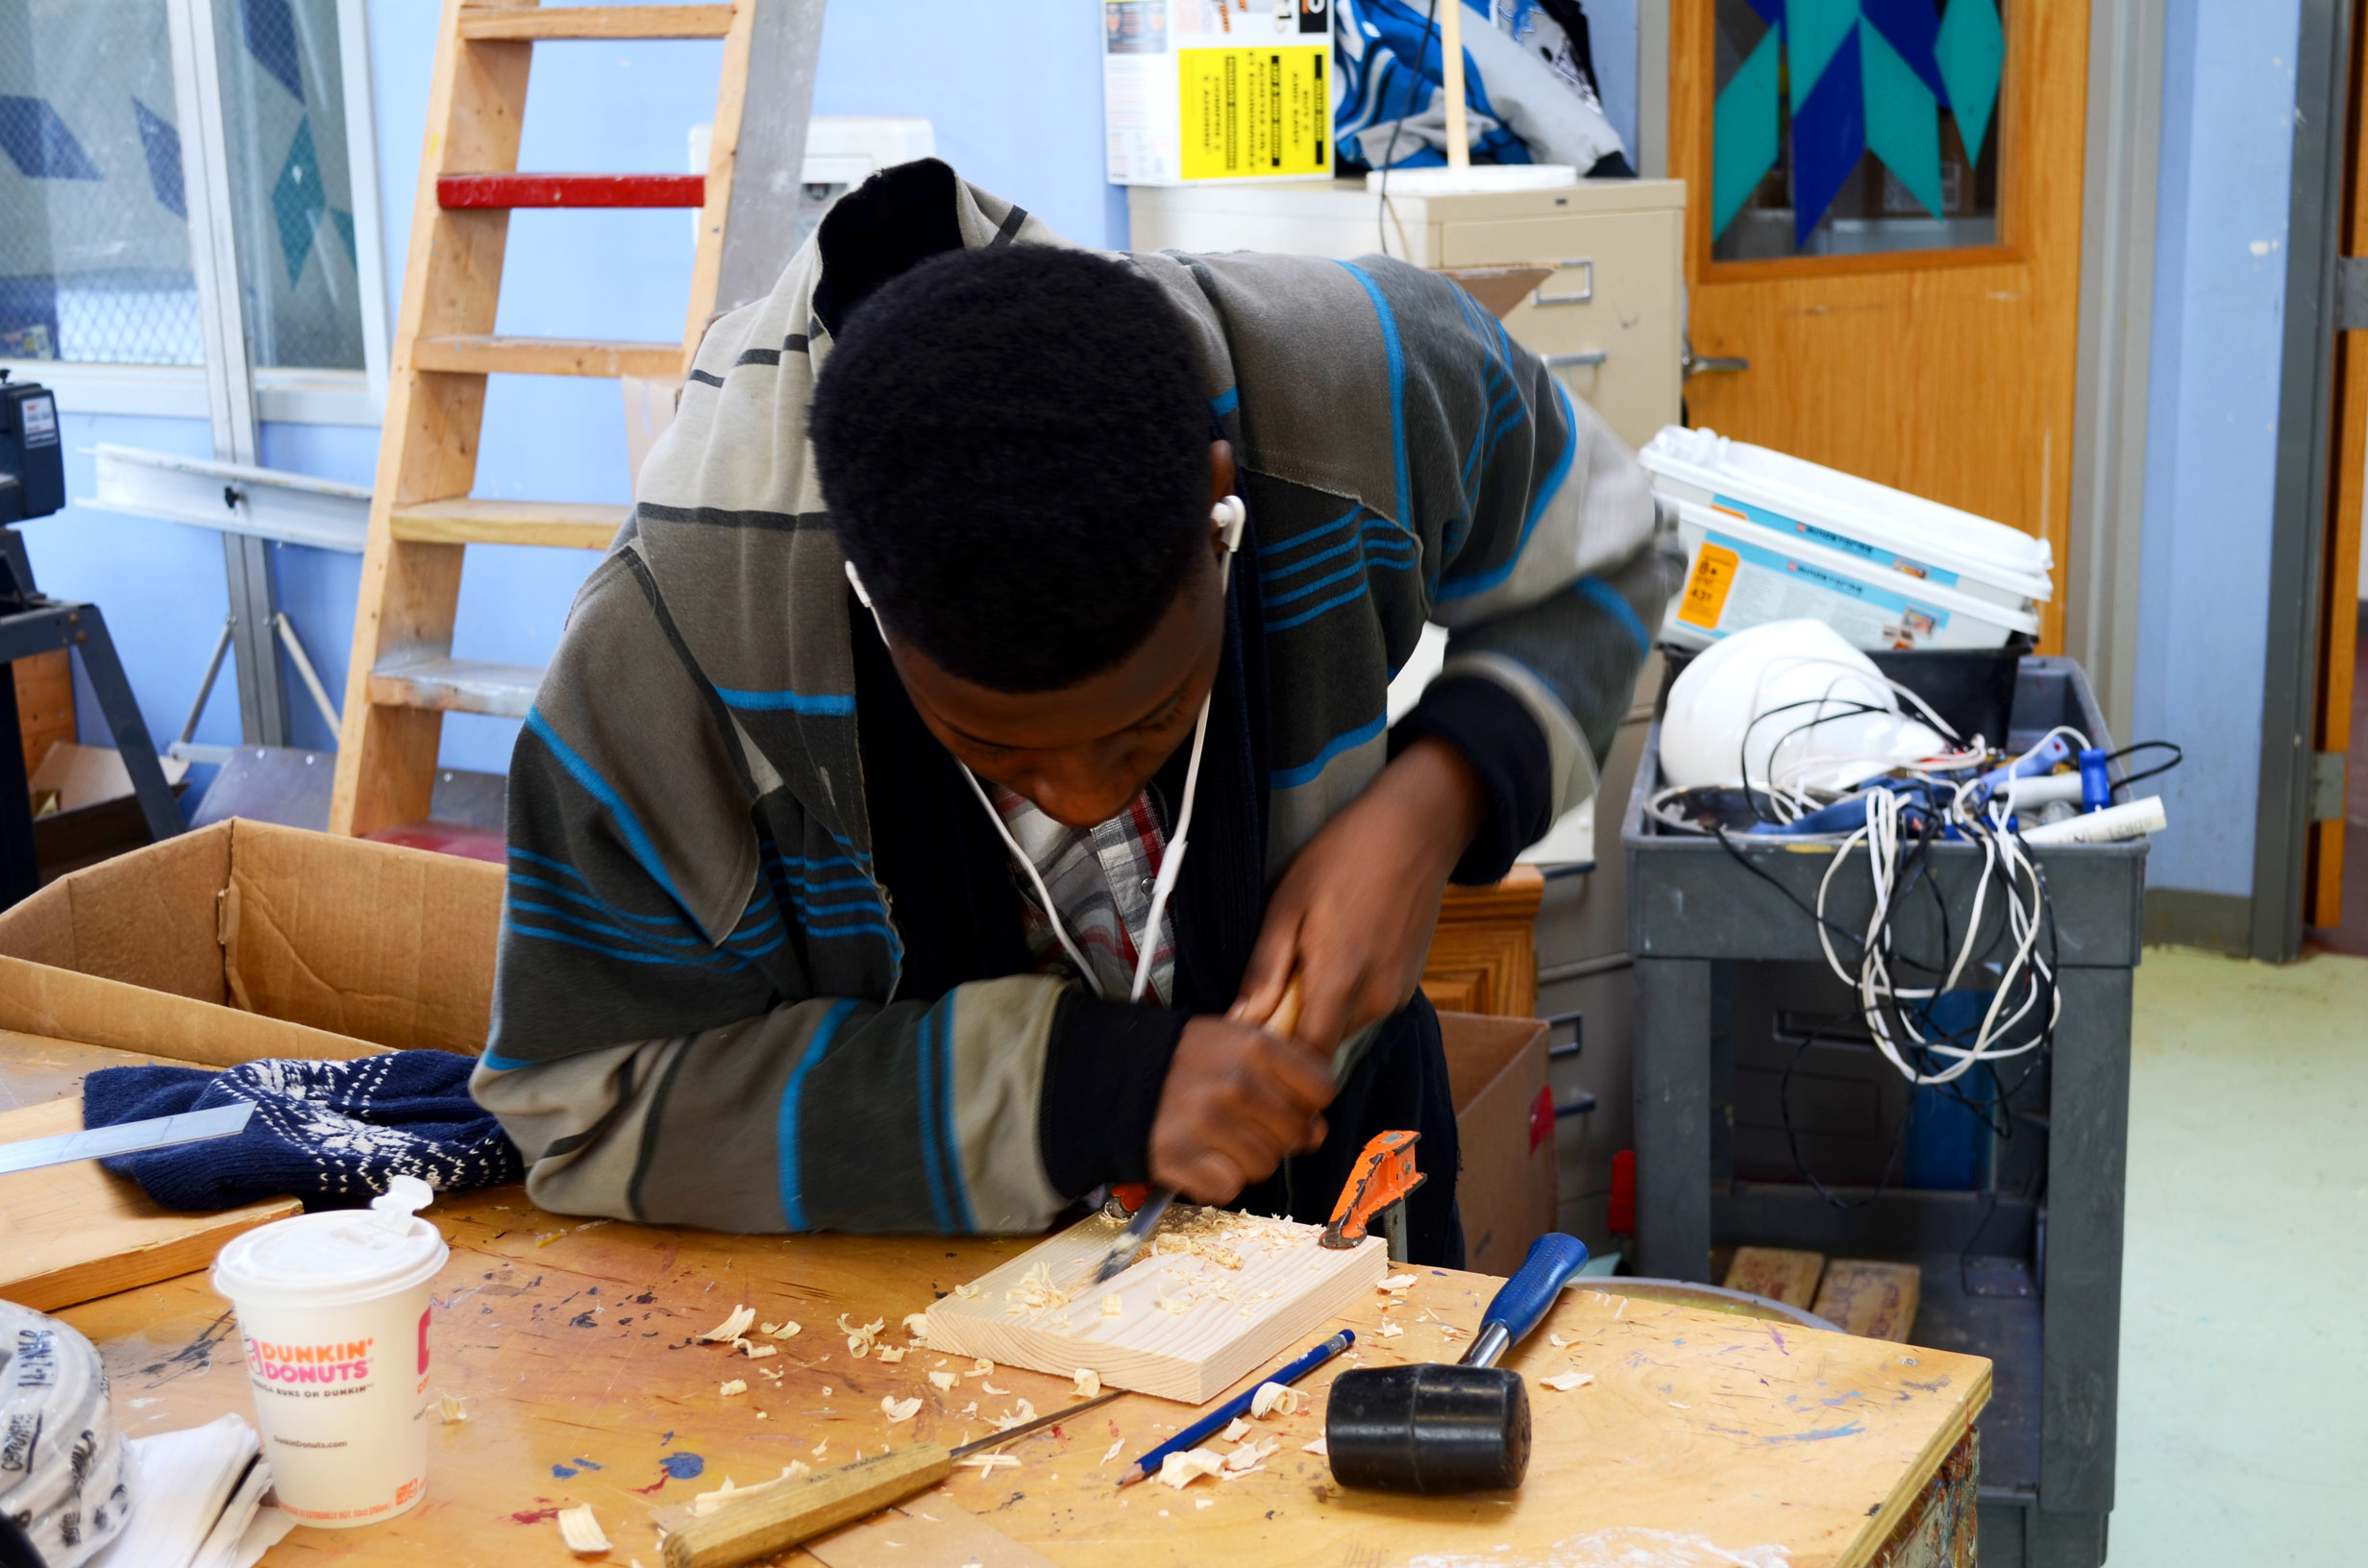 Students at the Brightmoor Maker Space participate in many different art and design workshops.